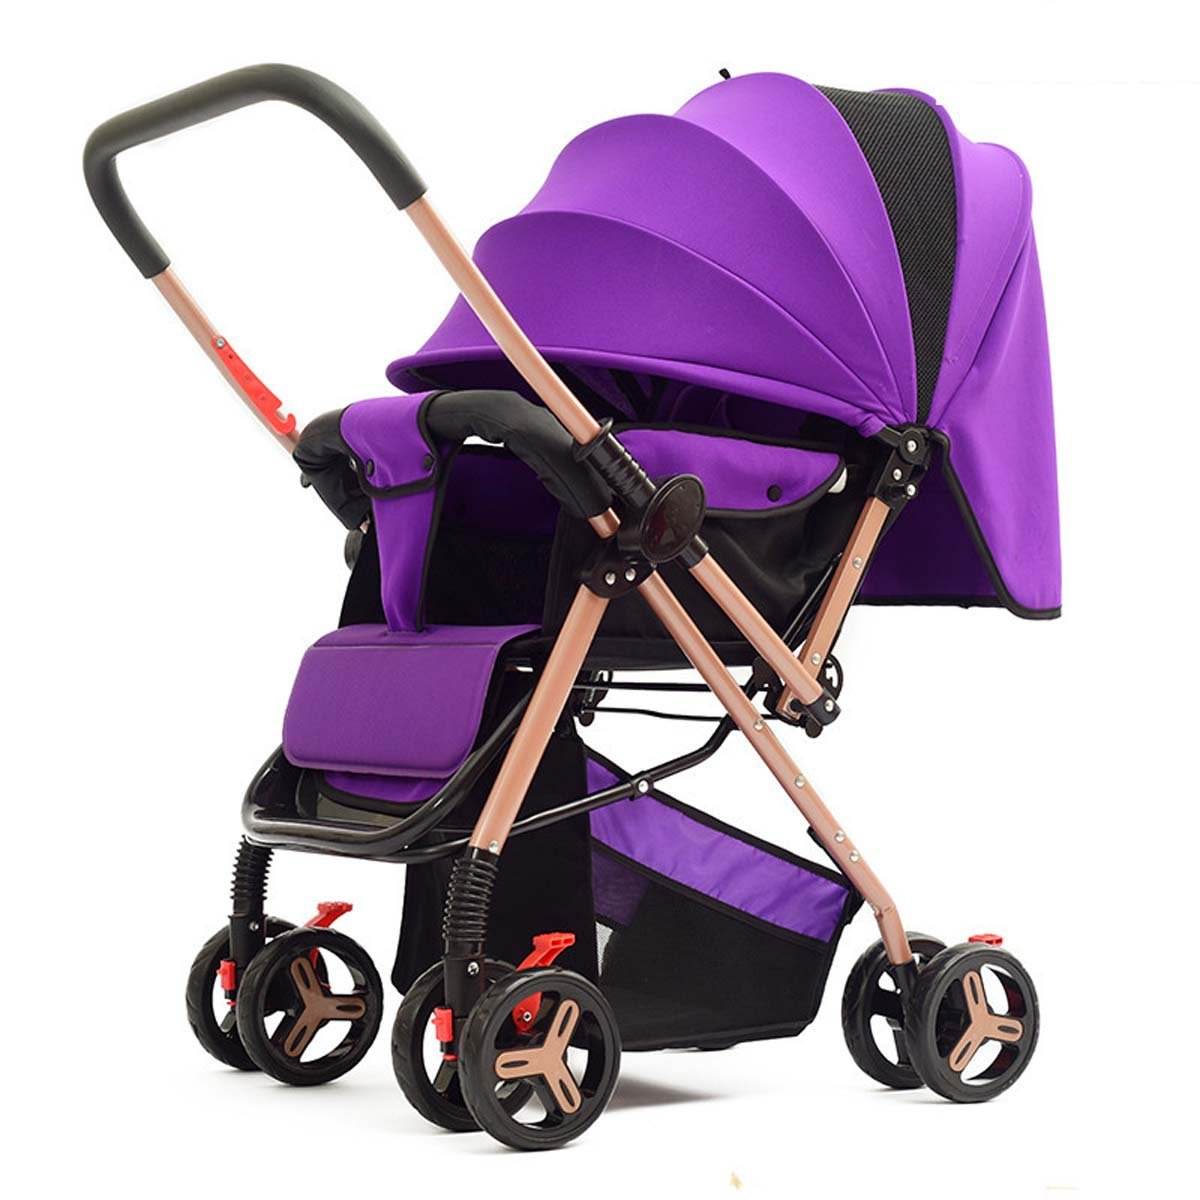 GONGFF Baby Pushcart Can Be Easily Folded Can Lie And Lie Down Baby Newborns Hand Push Parachute Two Way Children's Car,#1